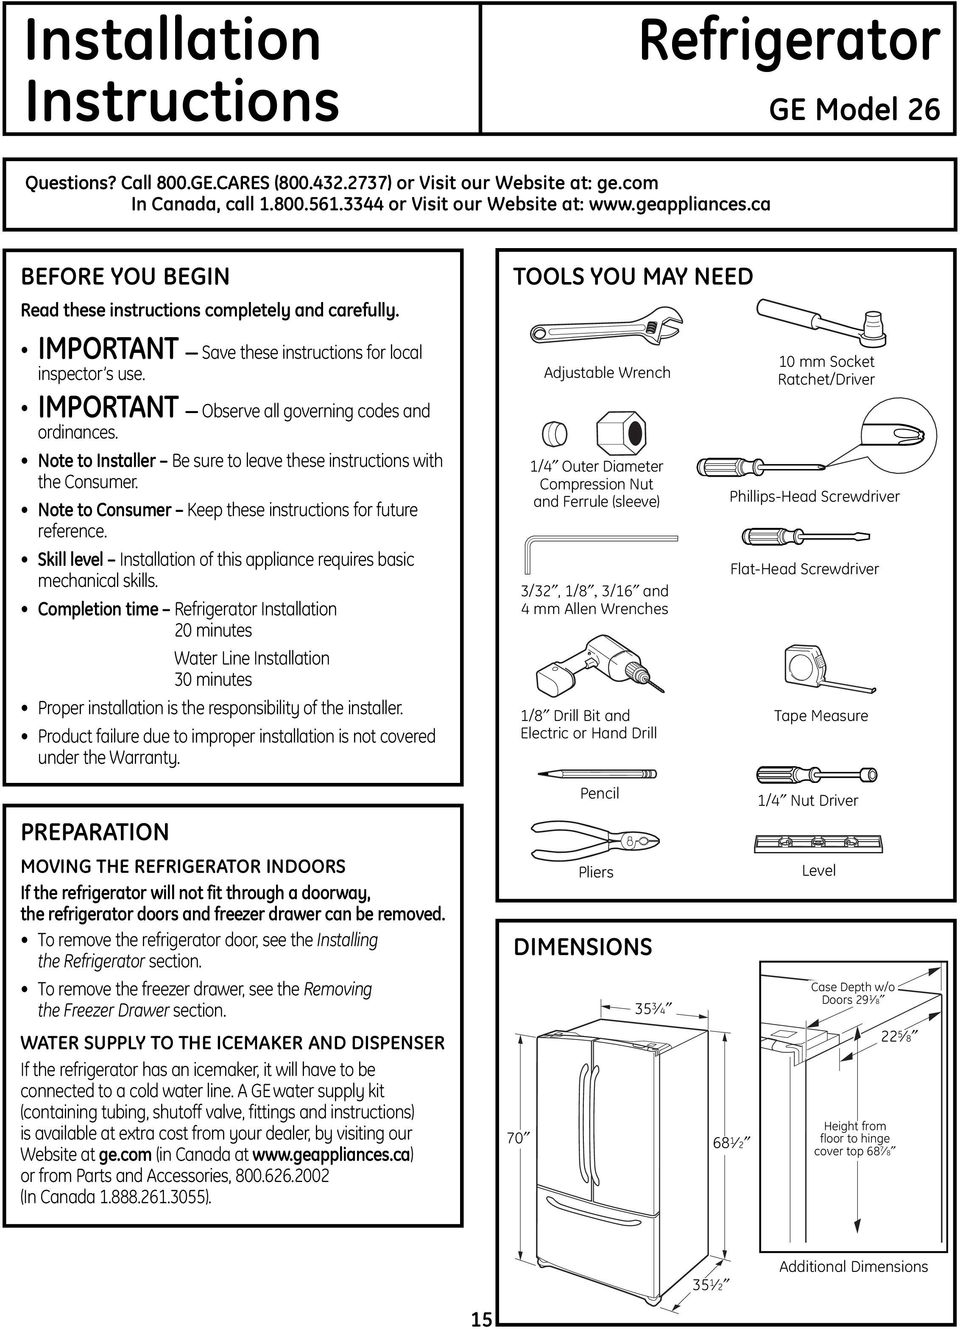 IMPORTANT Observe all governing codes and ordinances. Note to Installer Be sure to leave these instructions with the Consumer. Note to Consumer Keep these instructions for future reference.